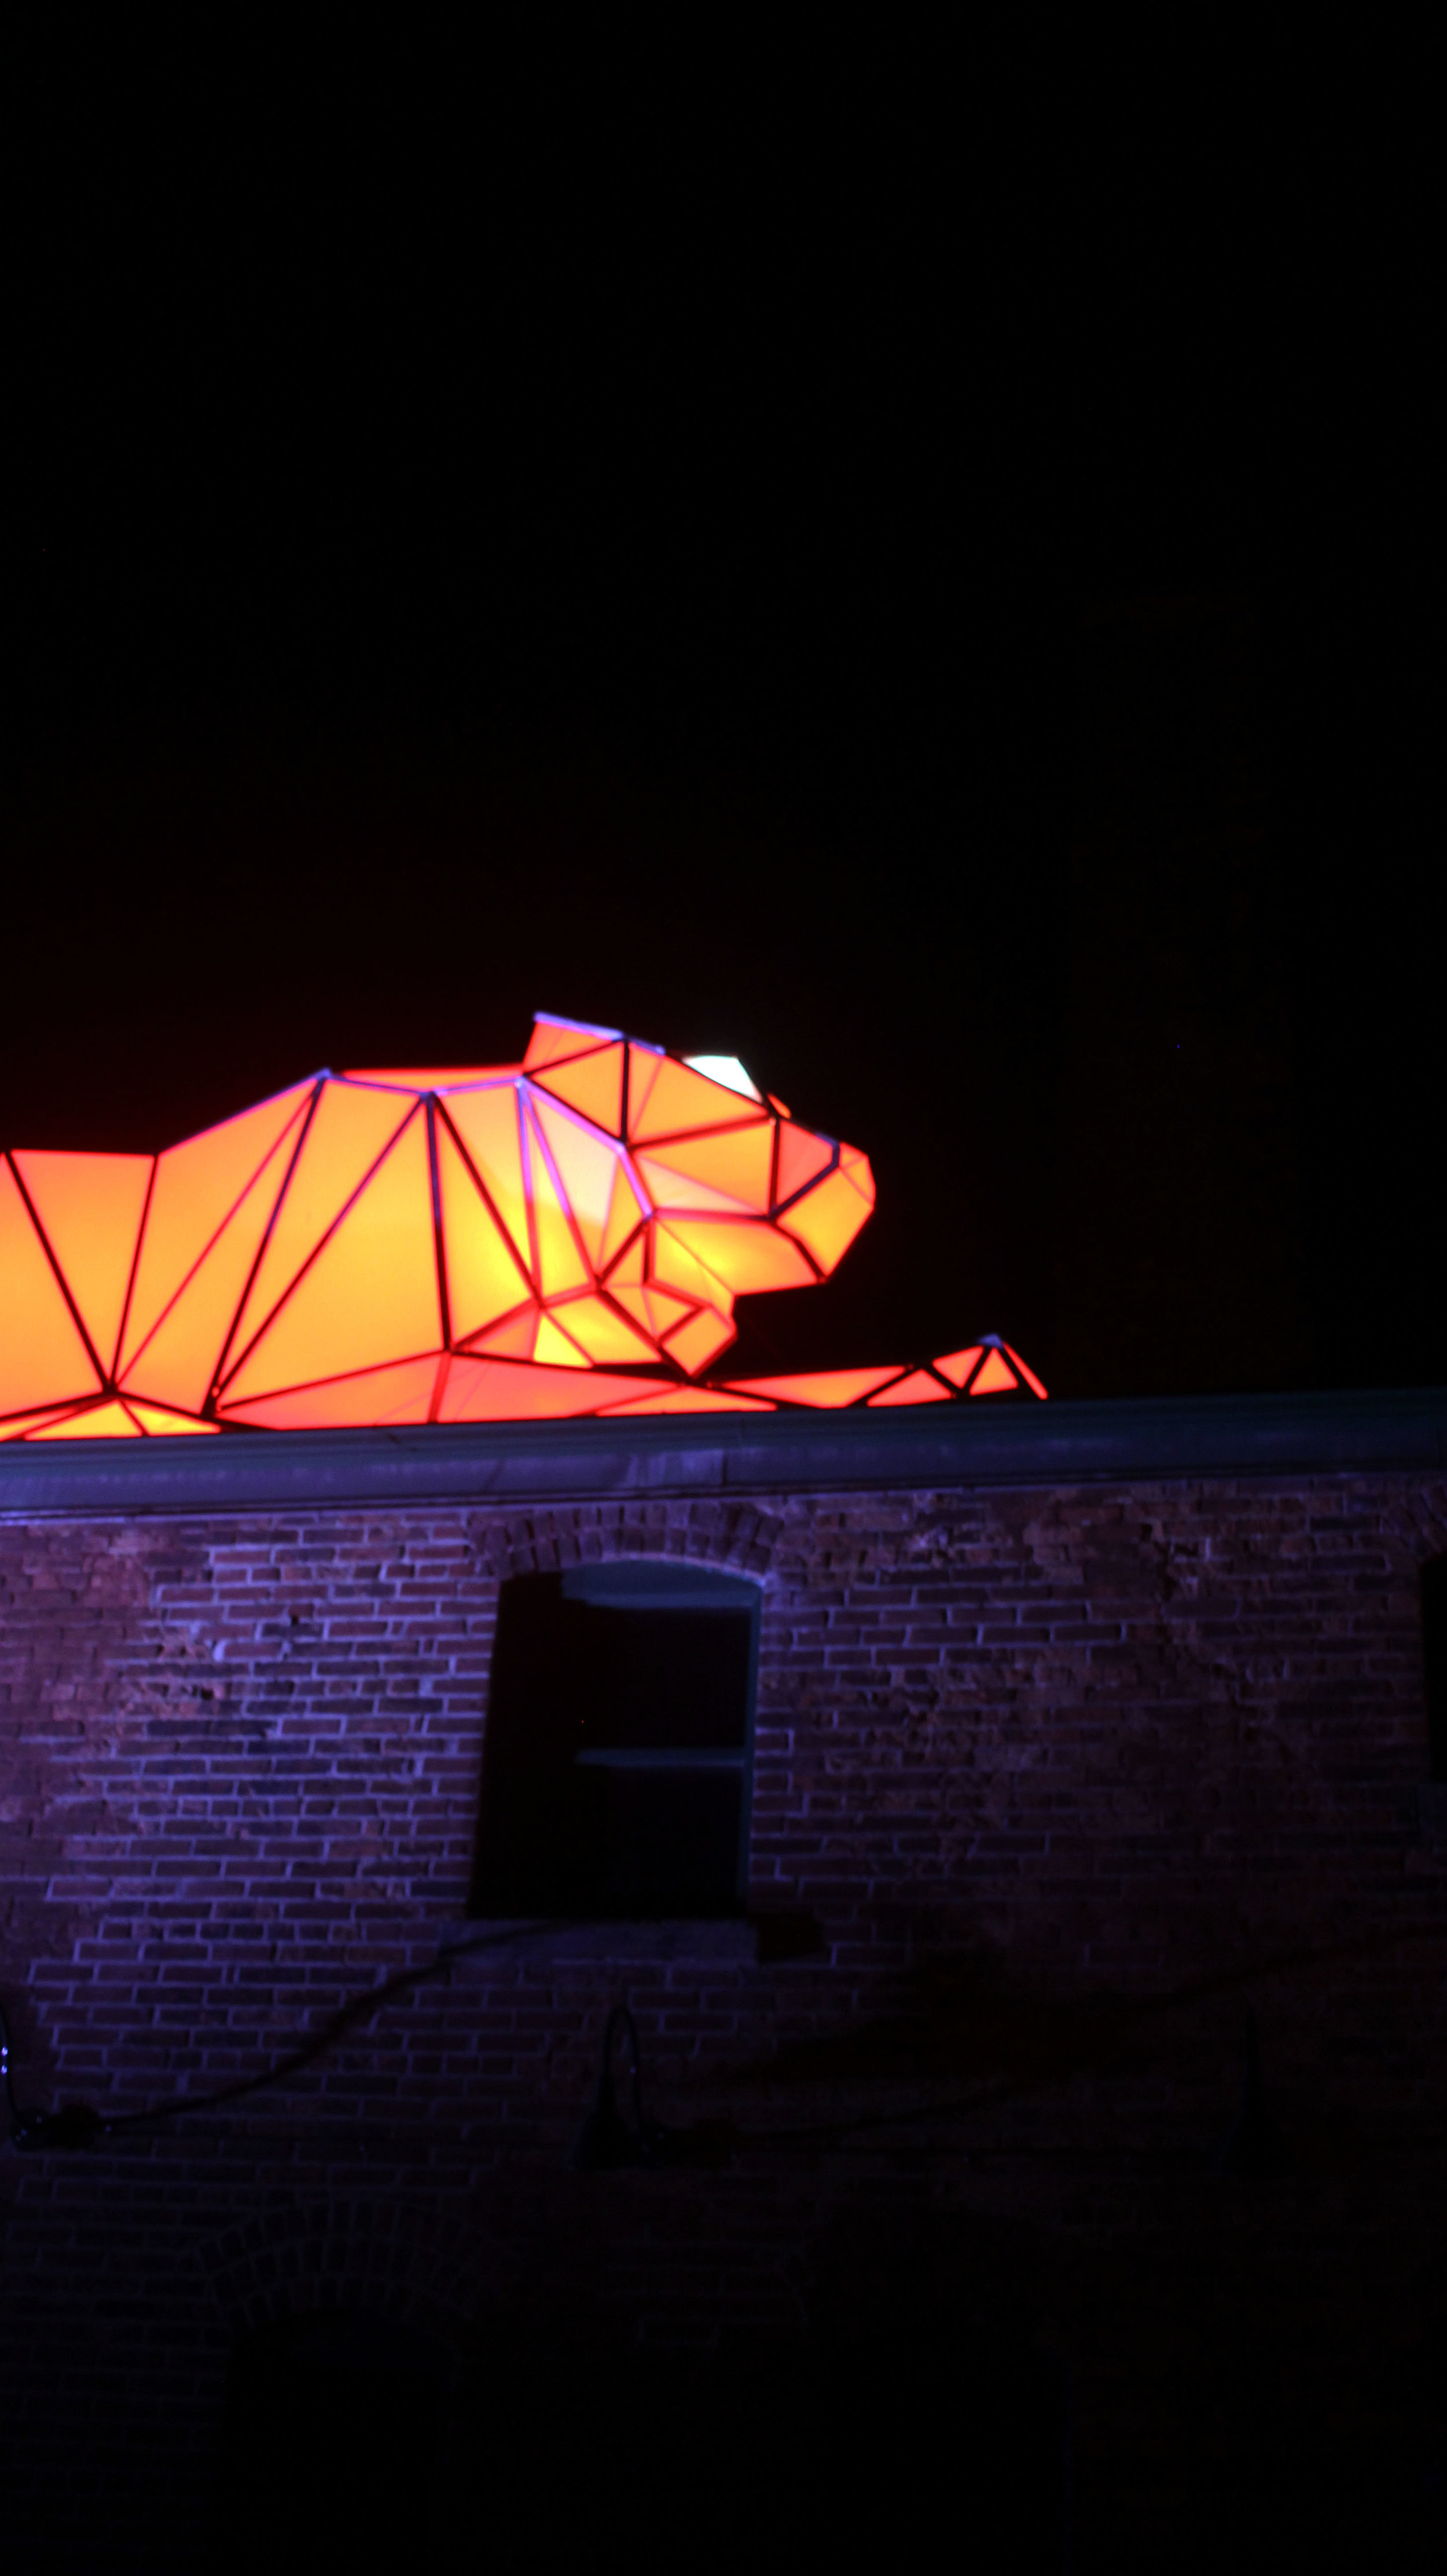 Tiger on the roof.